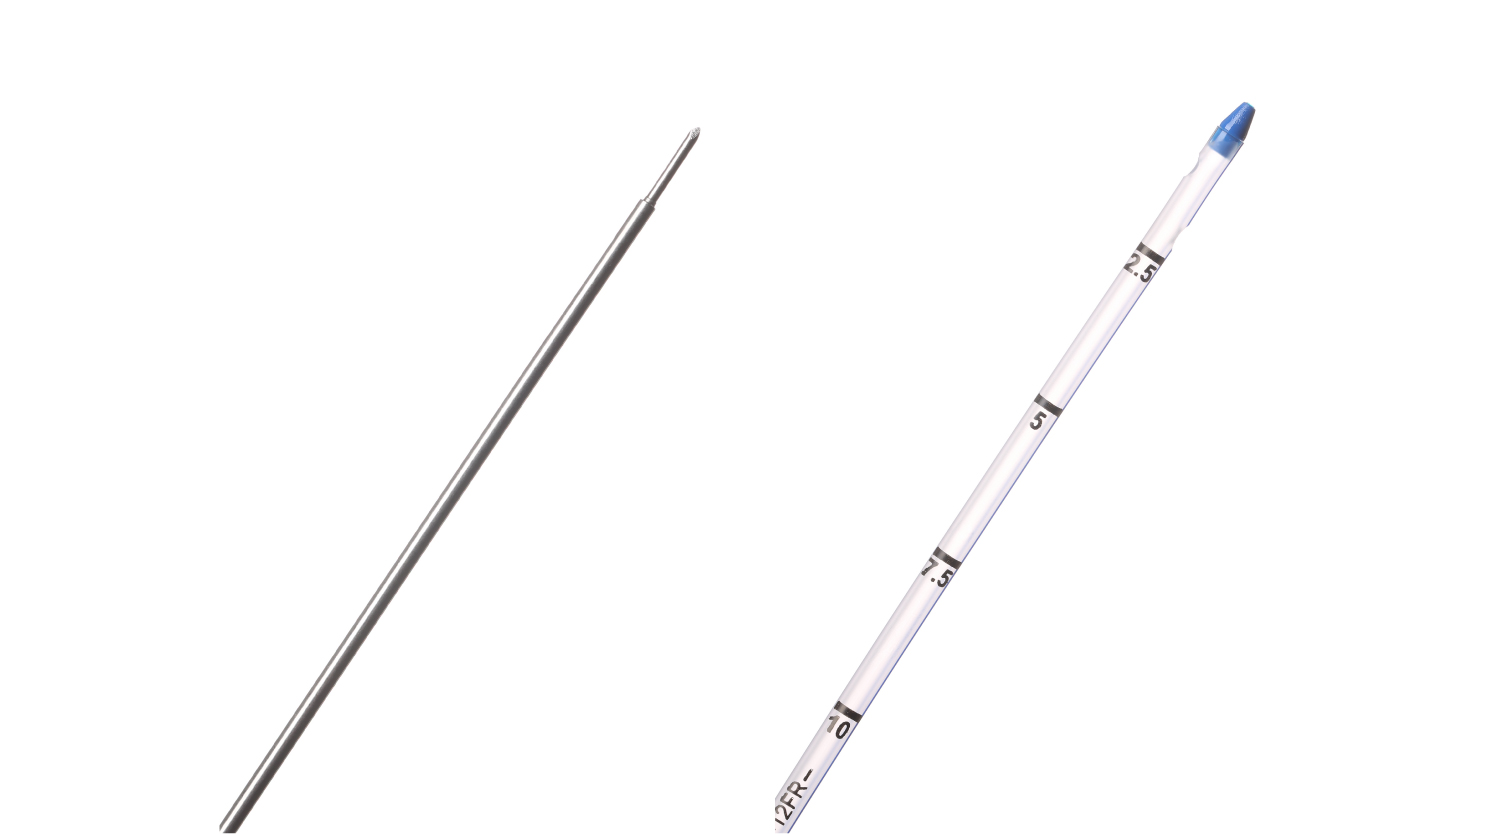 THORACIC CATHETER - W/ TROCAR, STANDARD TIP